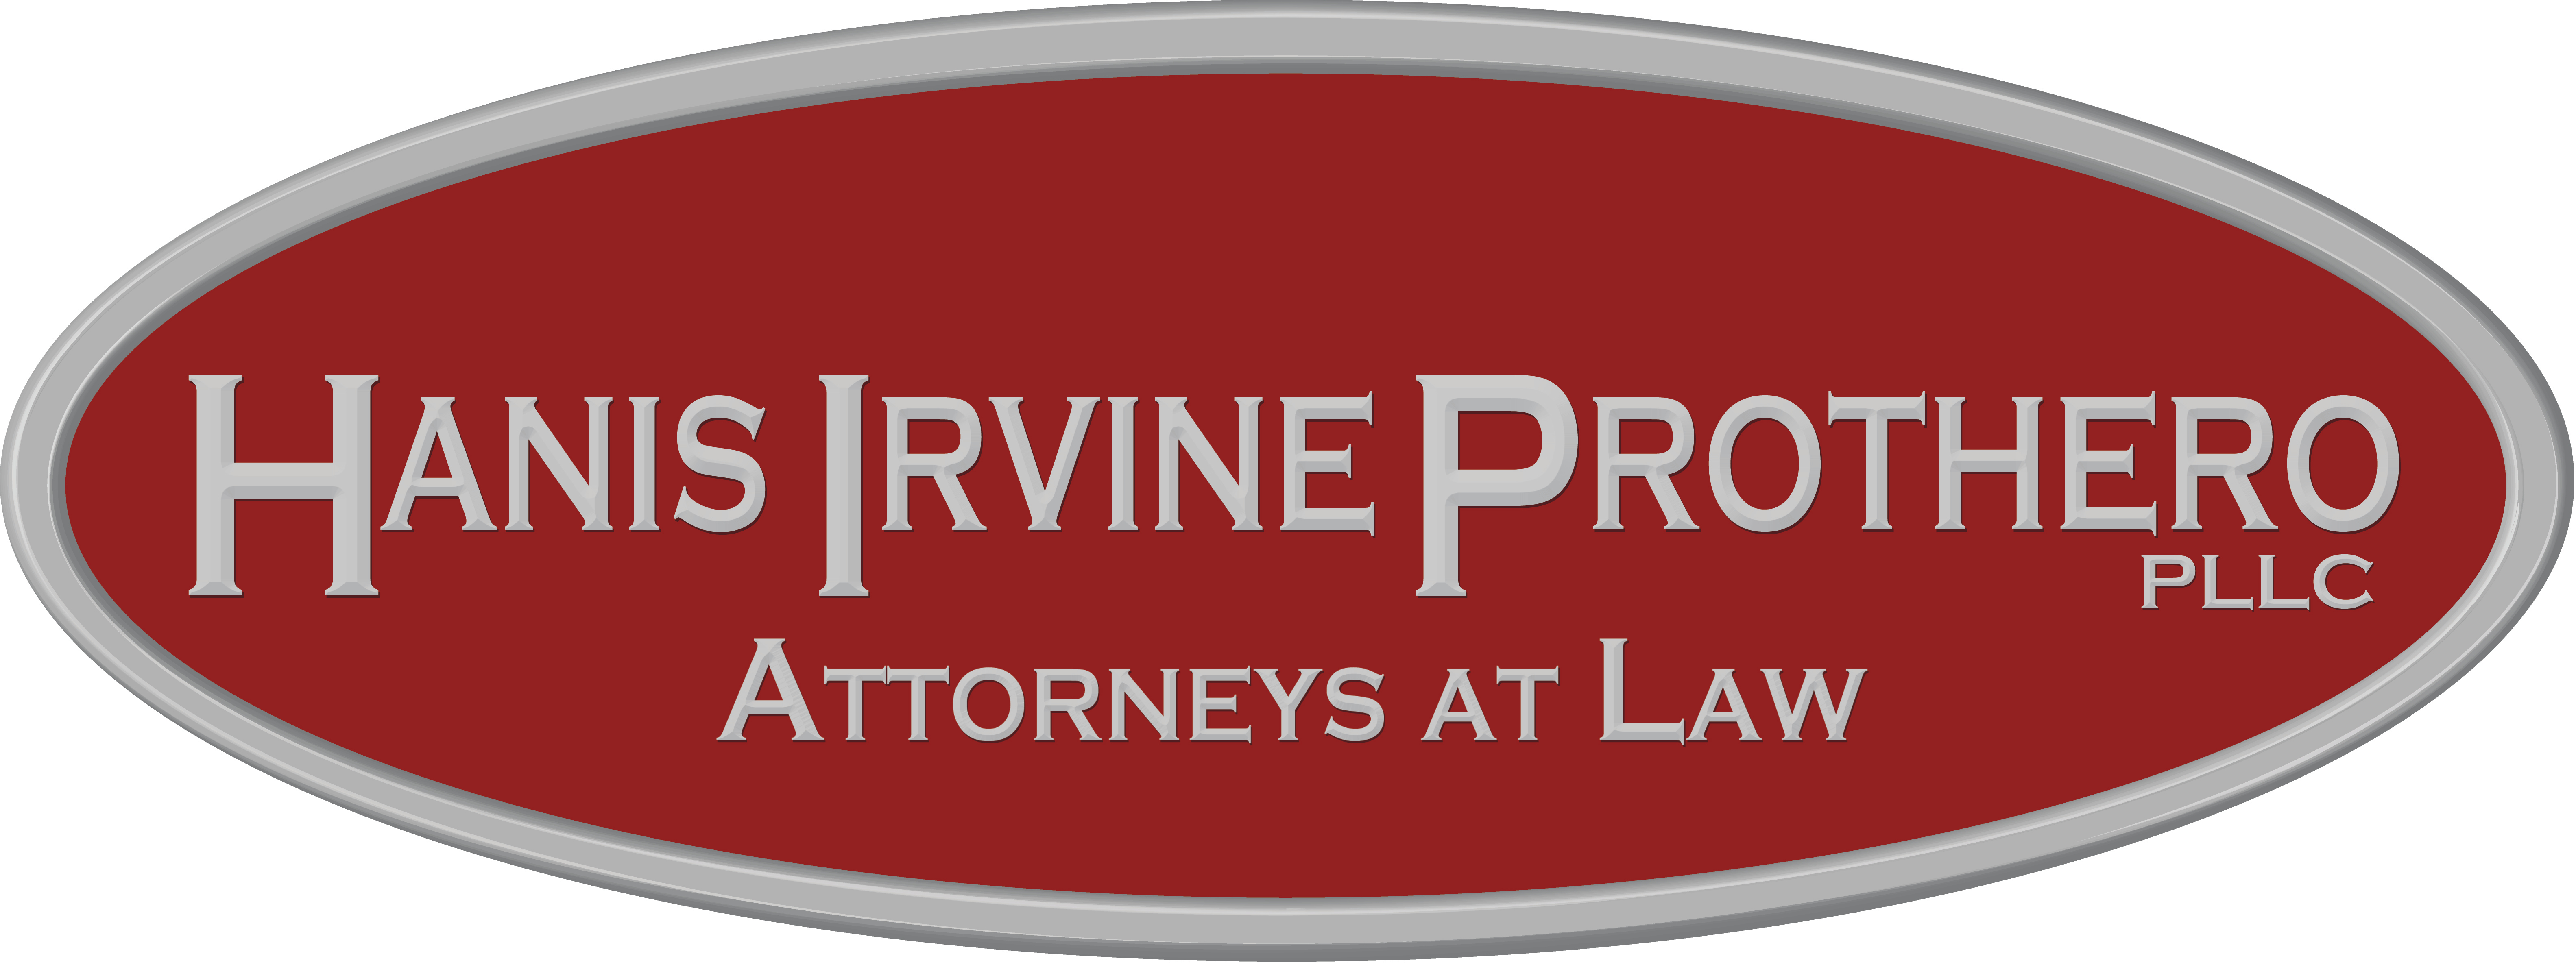 Hanis Irvine Prothero, Attorneys at Law - ad image